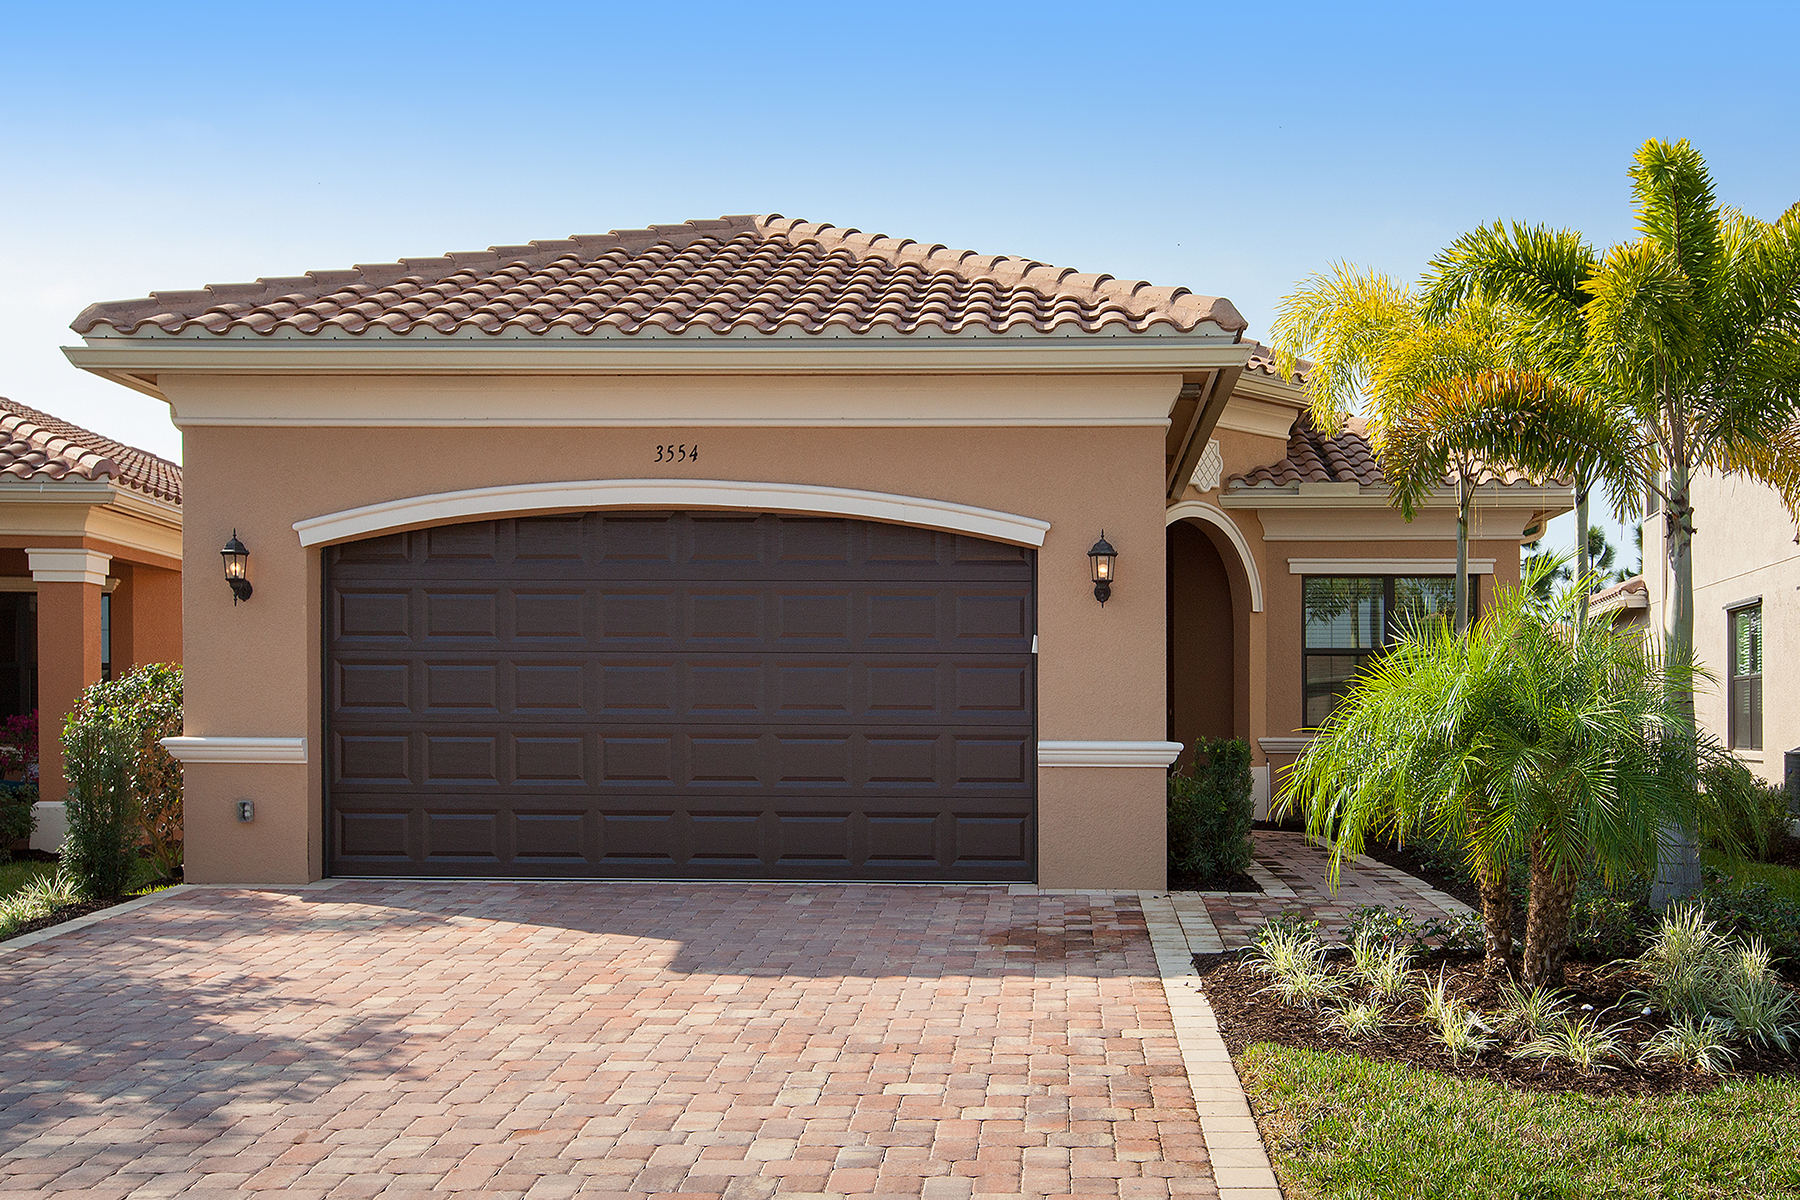 Single Family Home for Sale at RIVERSTONE 3554 Beaufort Ct Naples, Florida, 34119 United States